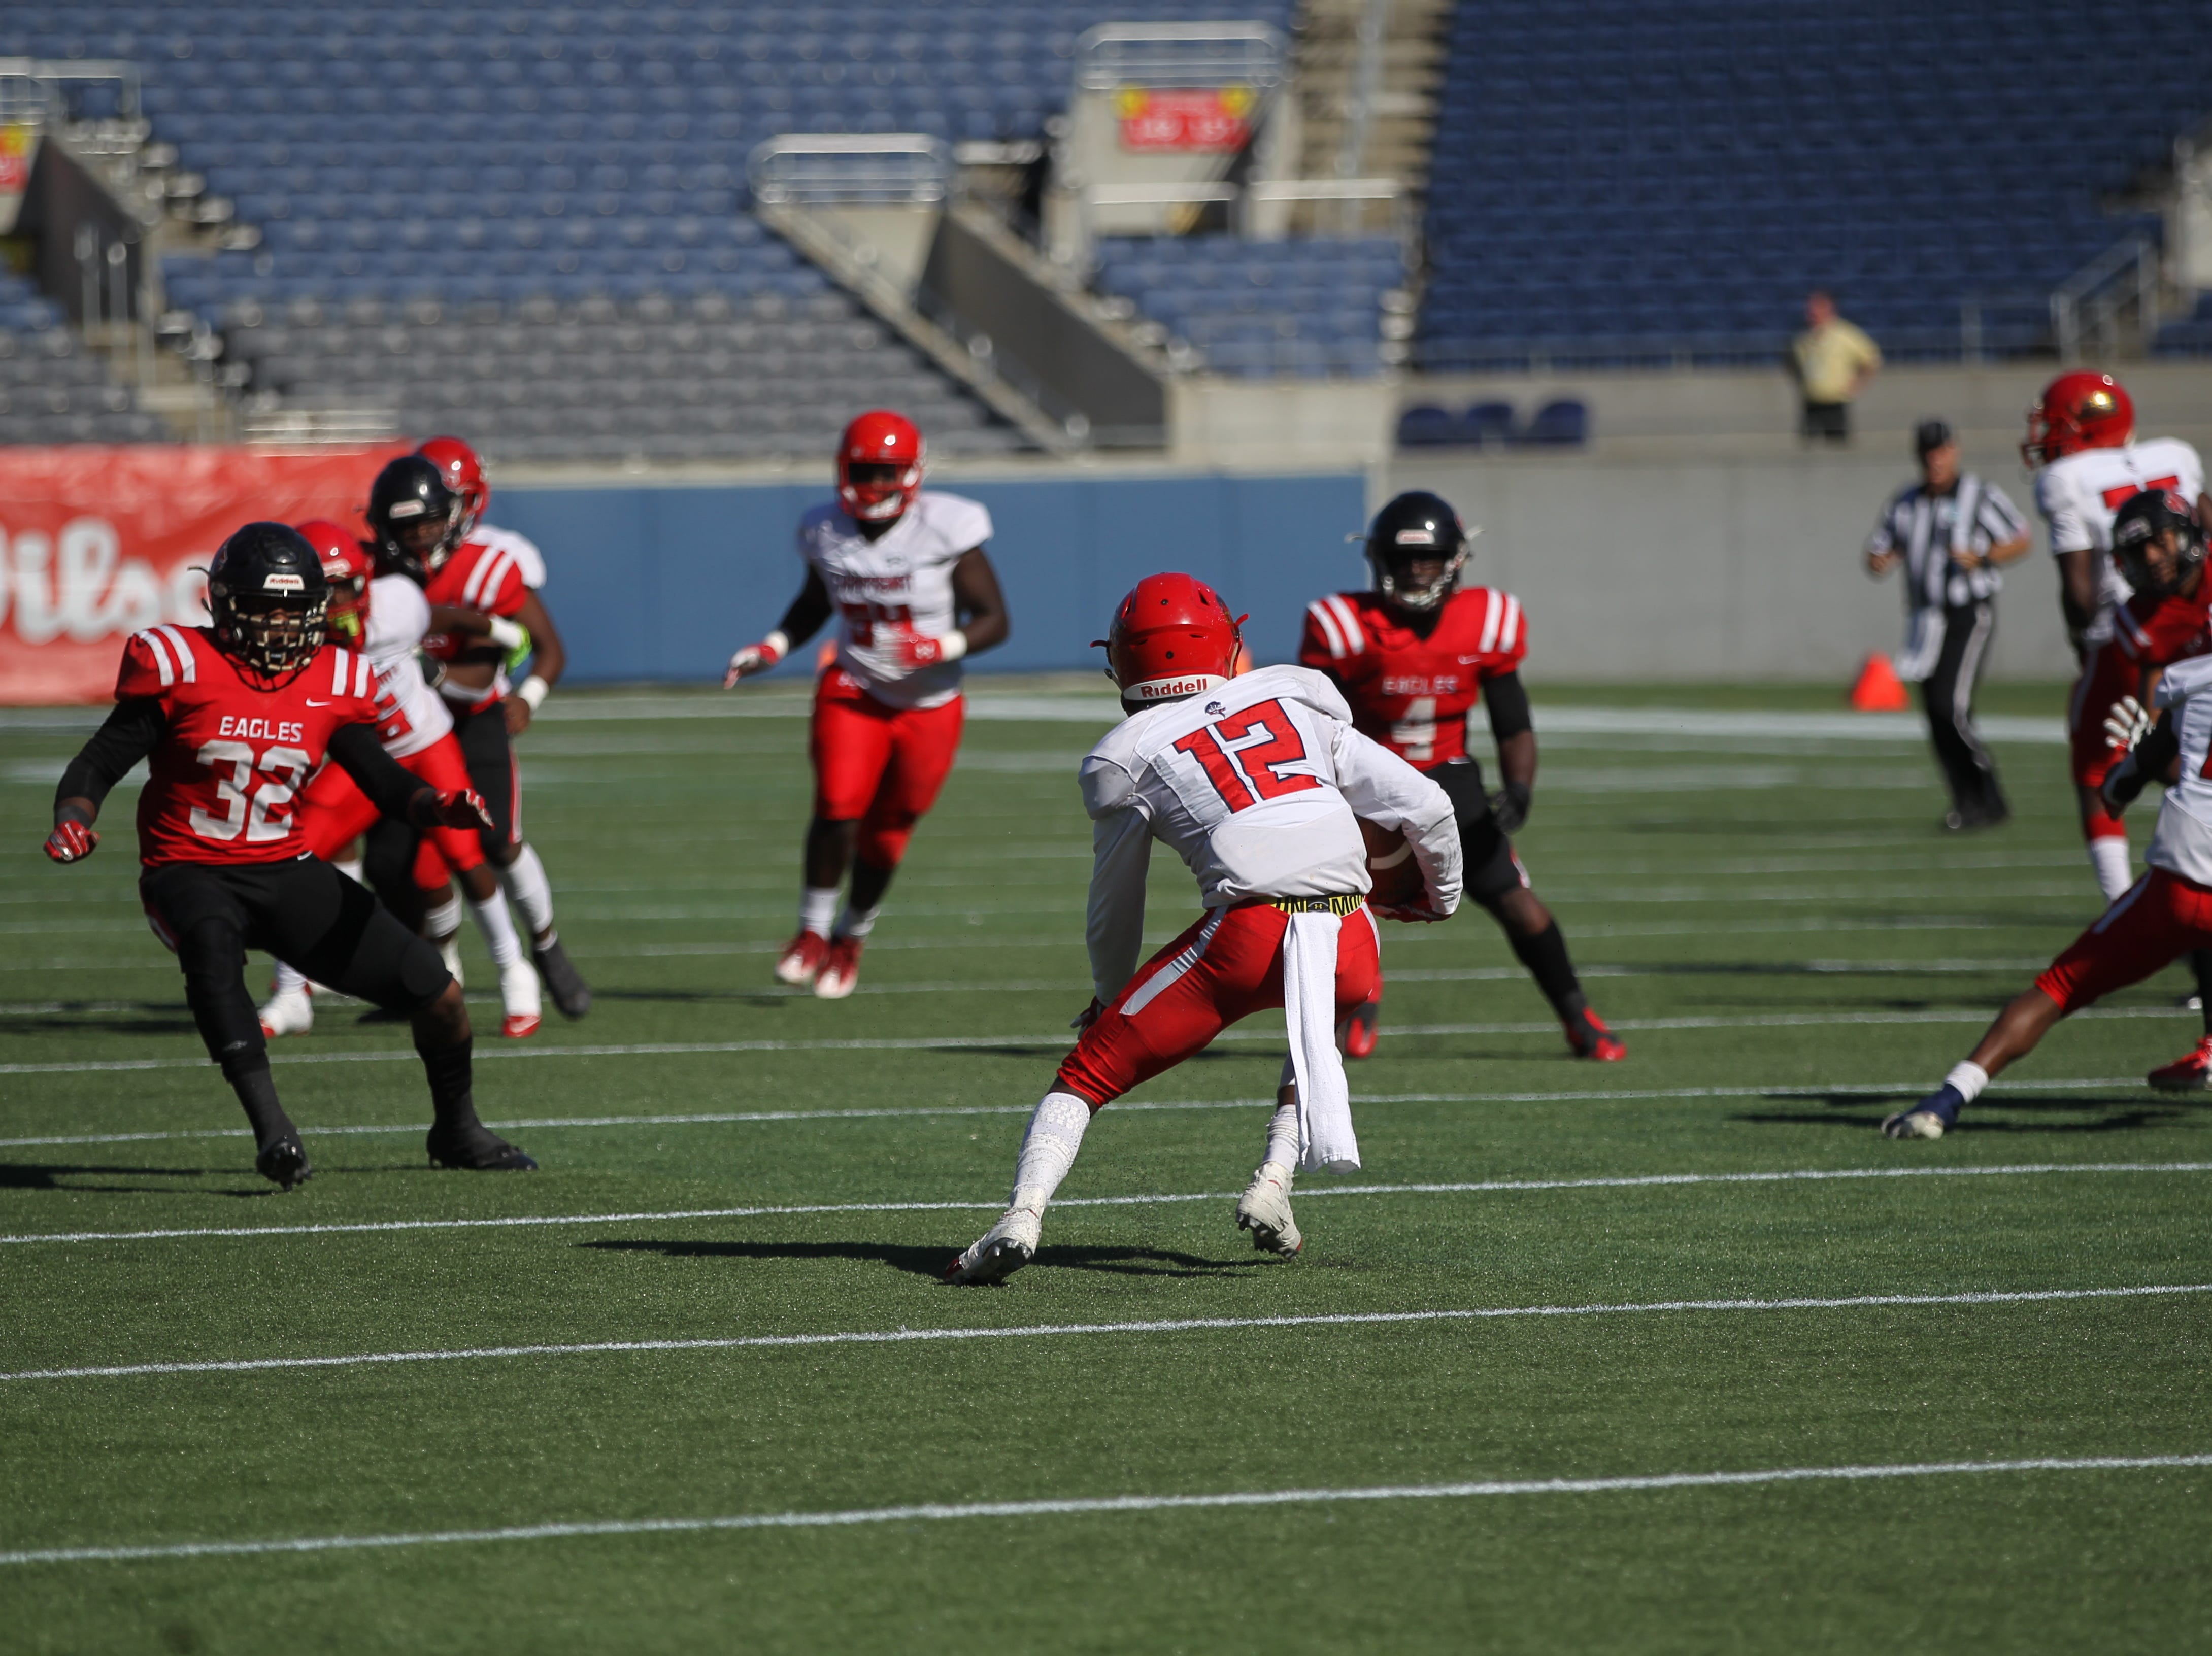 NFC beat Champagnat Catholic 28-20 in a Class 2A state championship game on Friday, Dec. 7, 2018, at Orlando's Camping World Stadium.